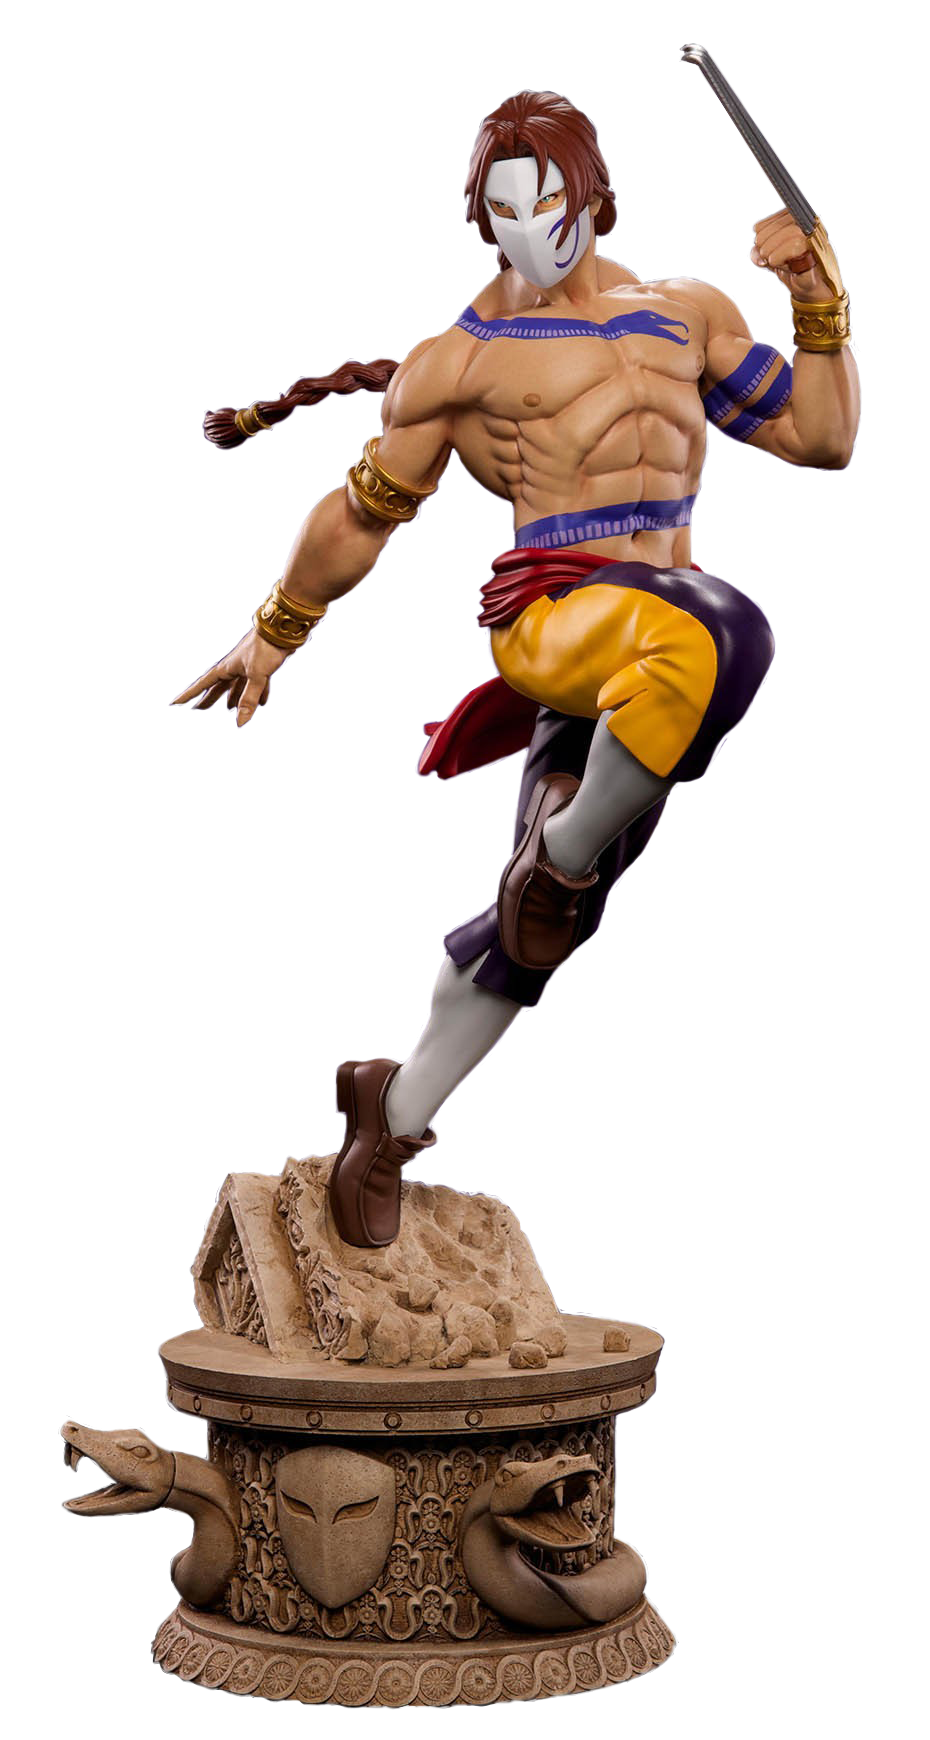 Street fighter vega png. Scale statue pop culture